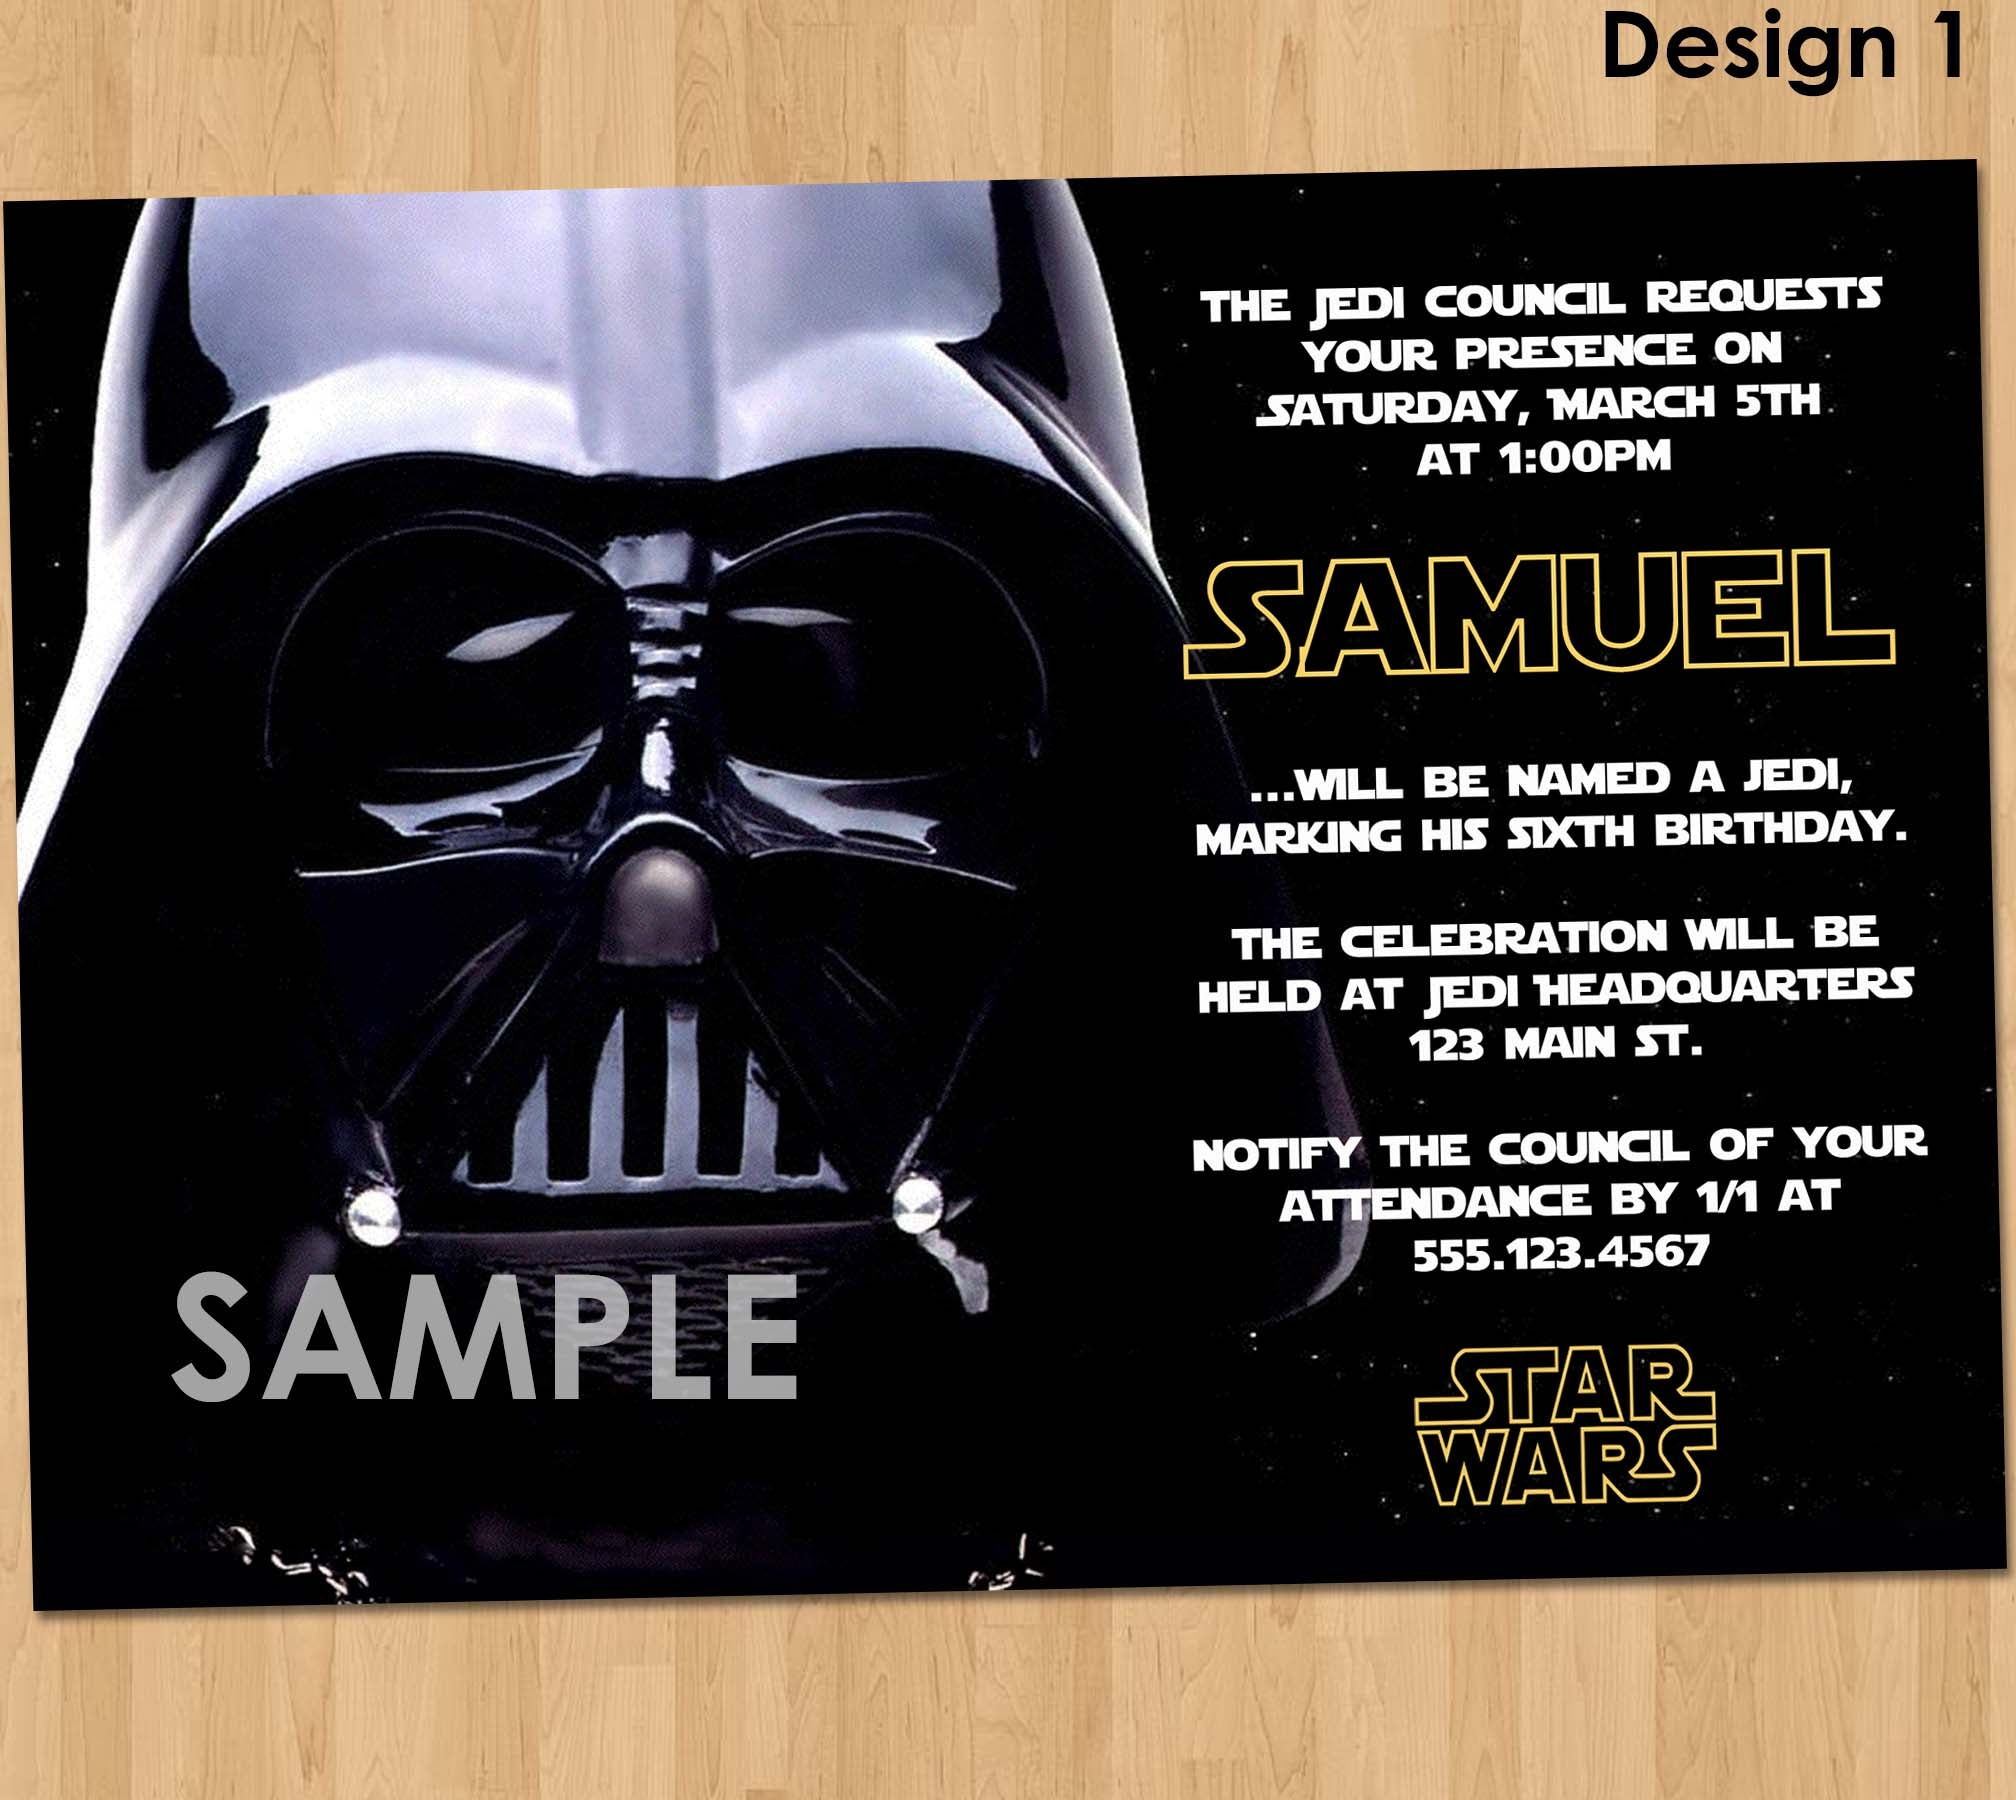 picture about Printable Star Wars Birthday Invitations known as Star Wars Get together Invitation - Star Wars Celebration Printable - Star Wars Invitation - Star Wars Birthday Social gathering - Darth Vader Birthday Celebration